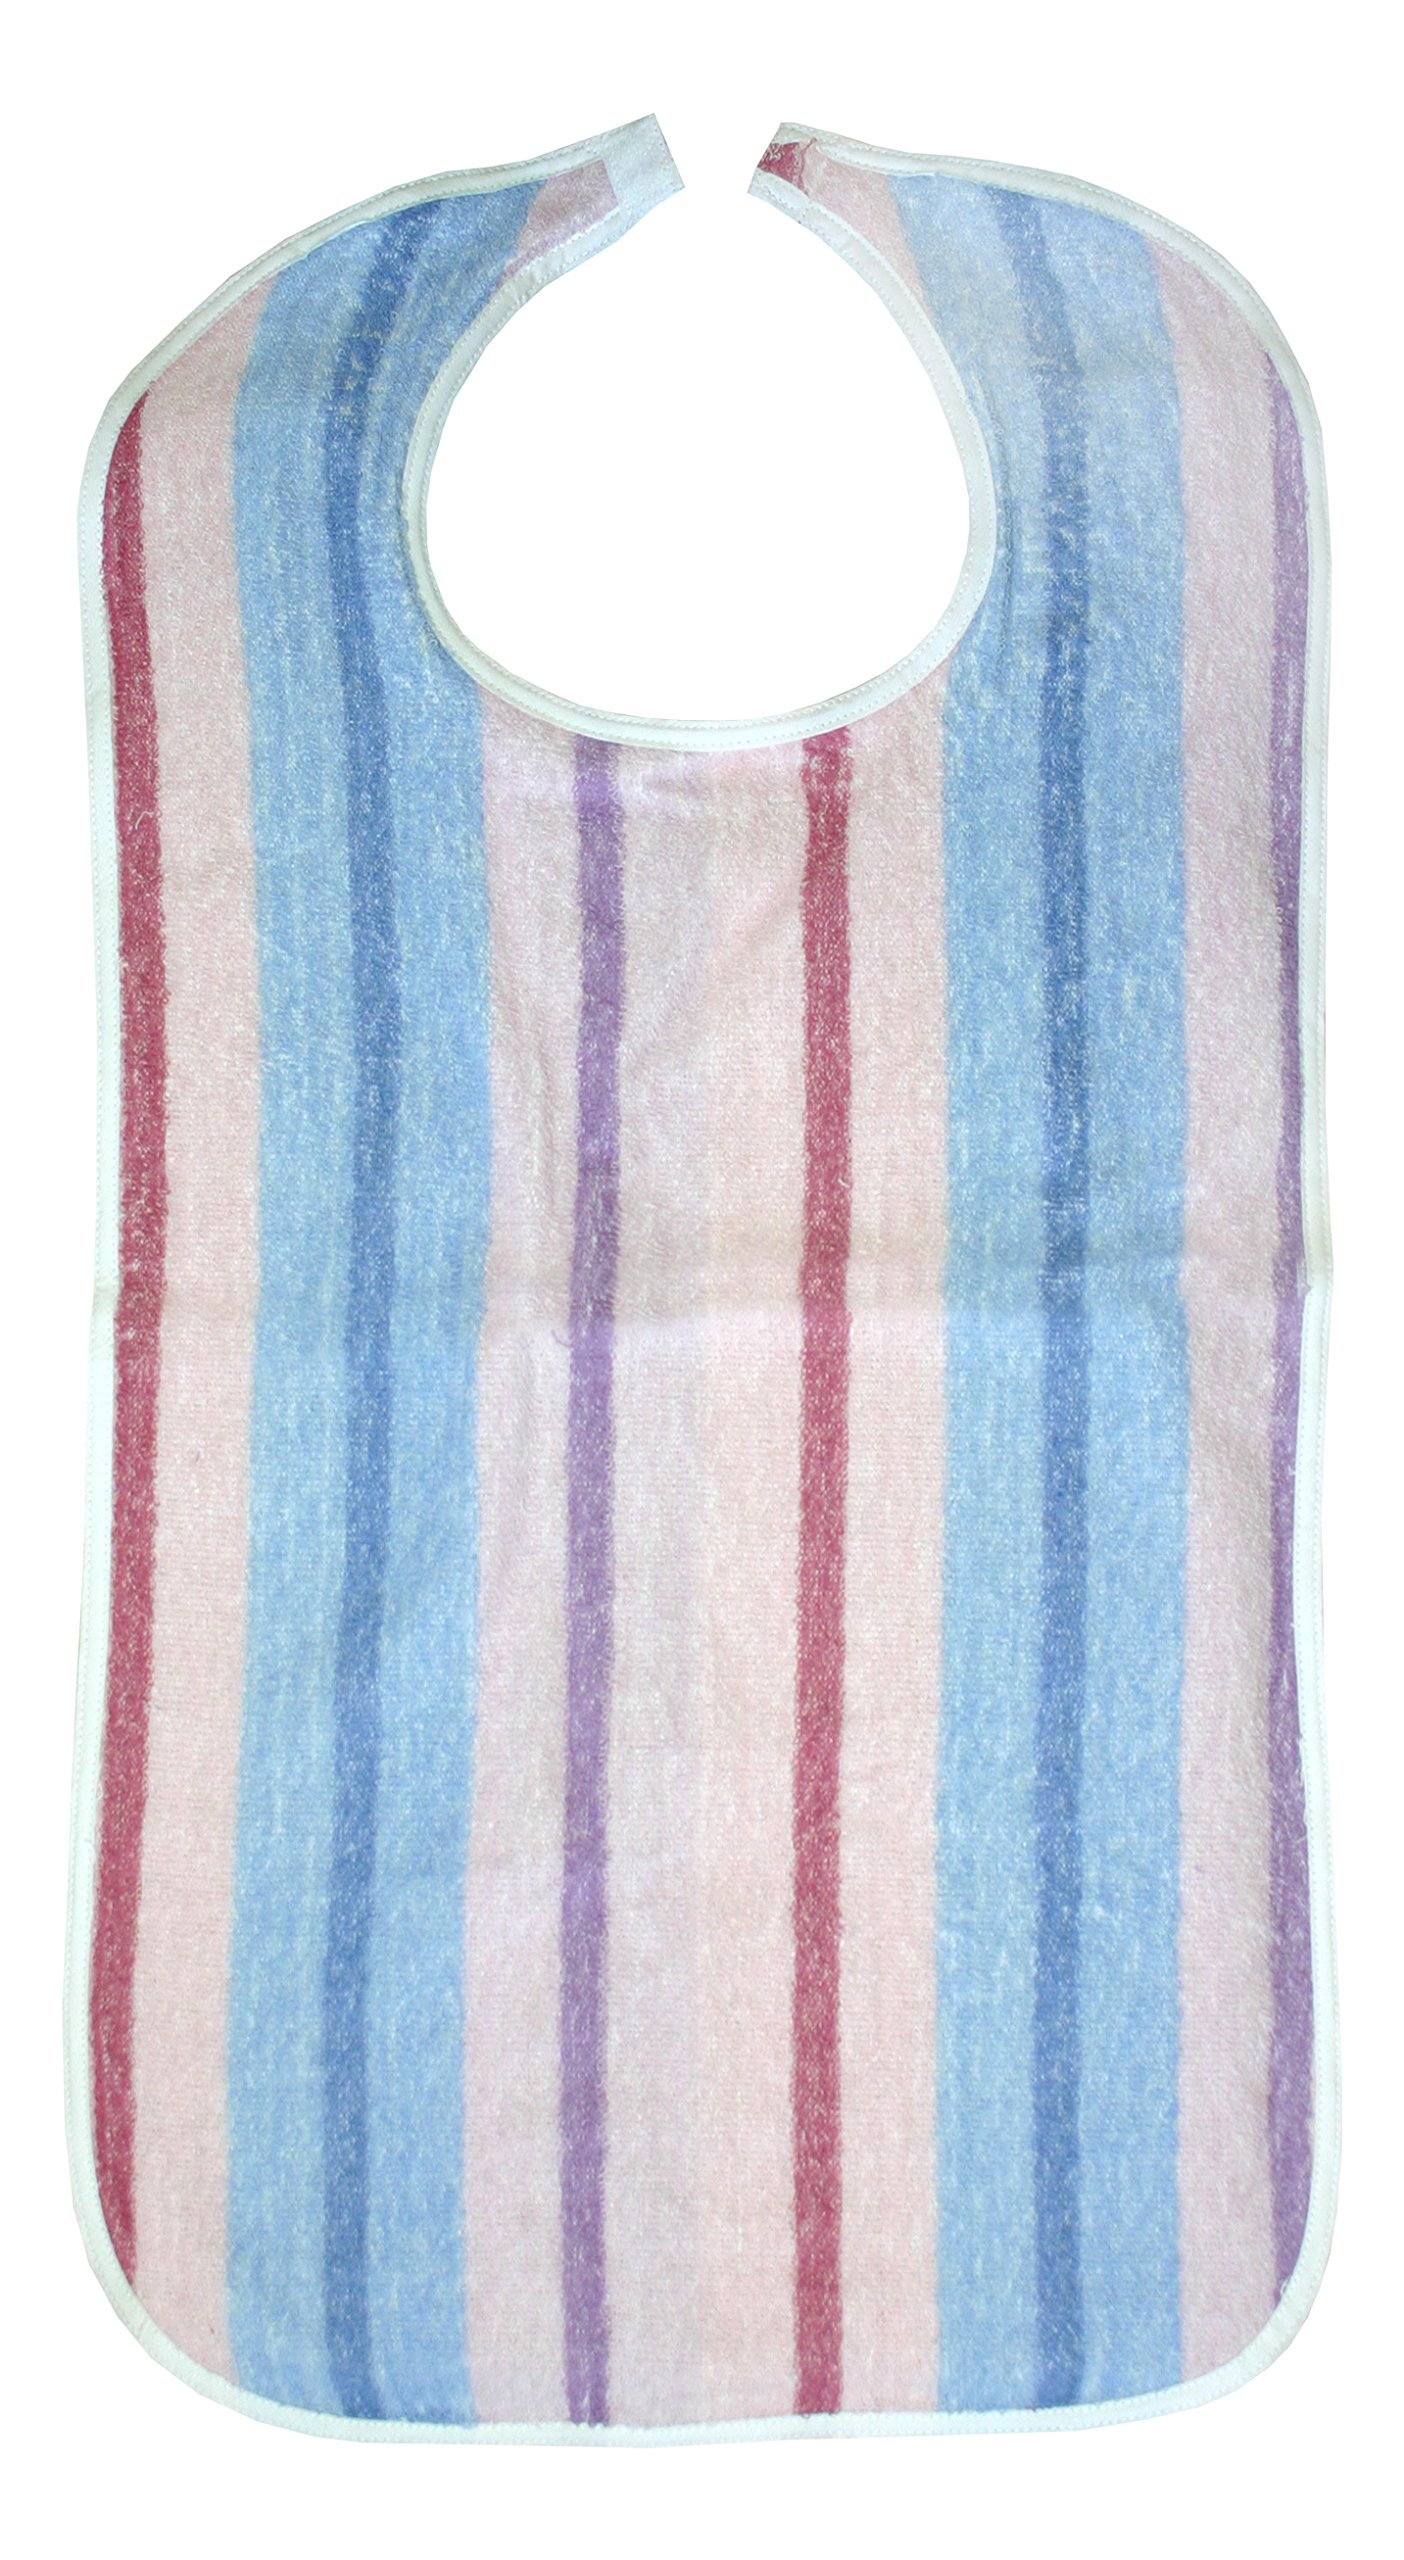 3 Terry Clothing Protector Stripes Print - Adult Bibs